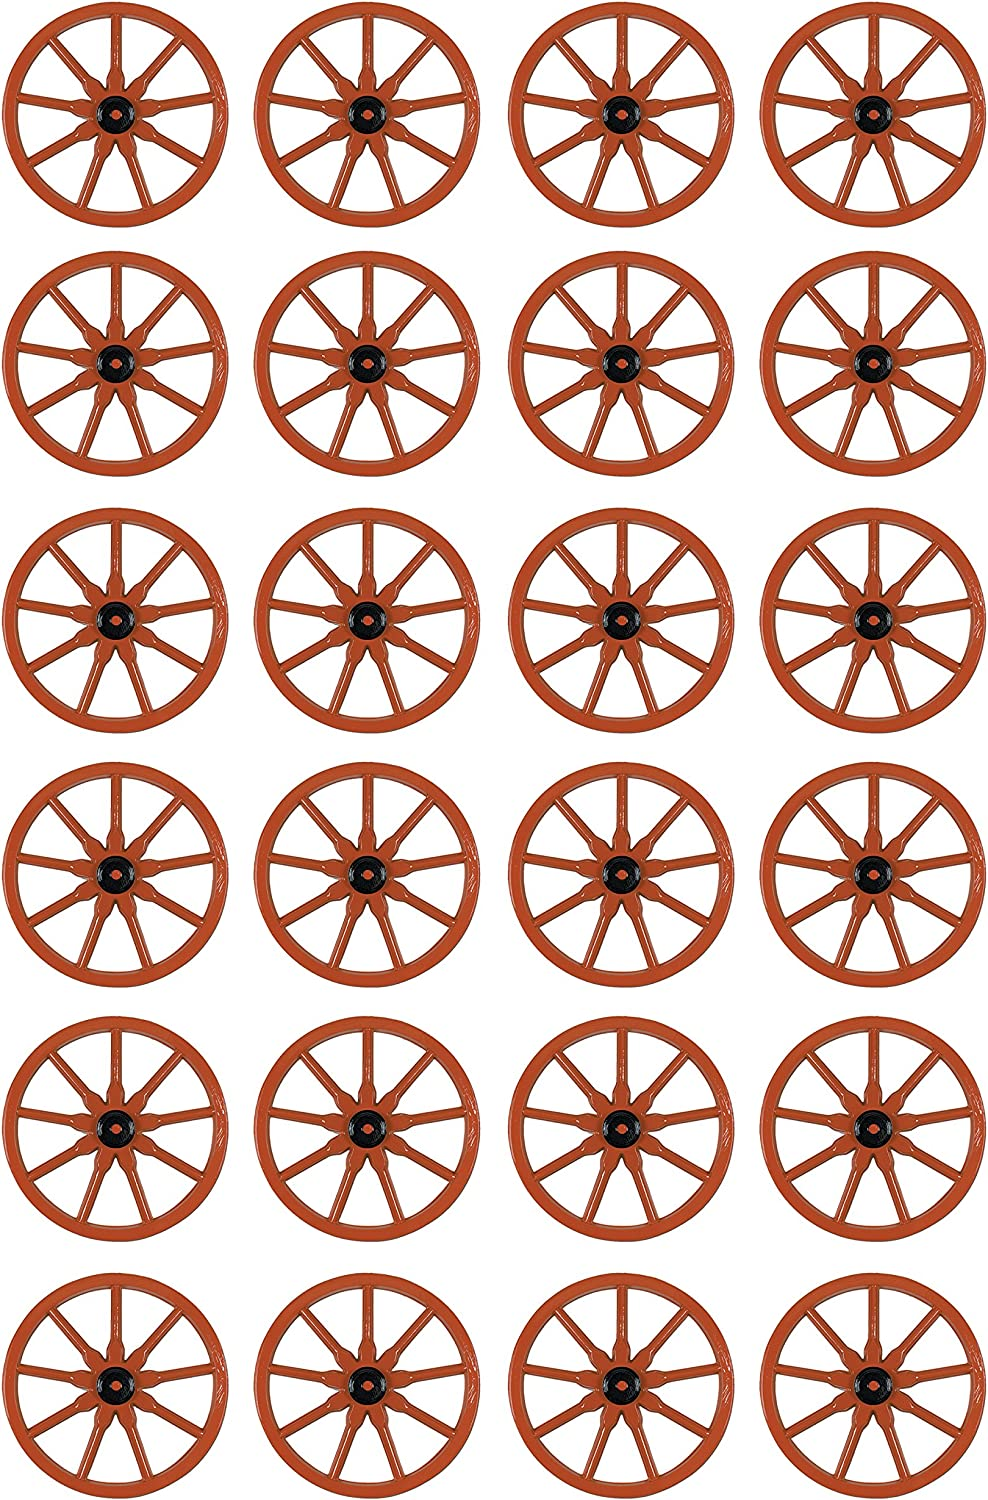 Beistle Plastic Wagon Wheels 24 Piece, Brown/Black